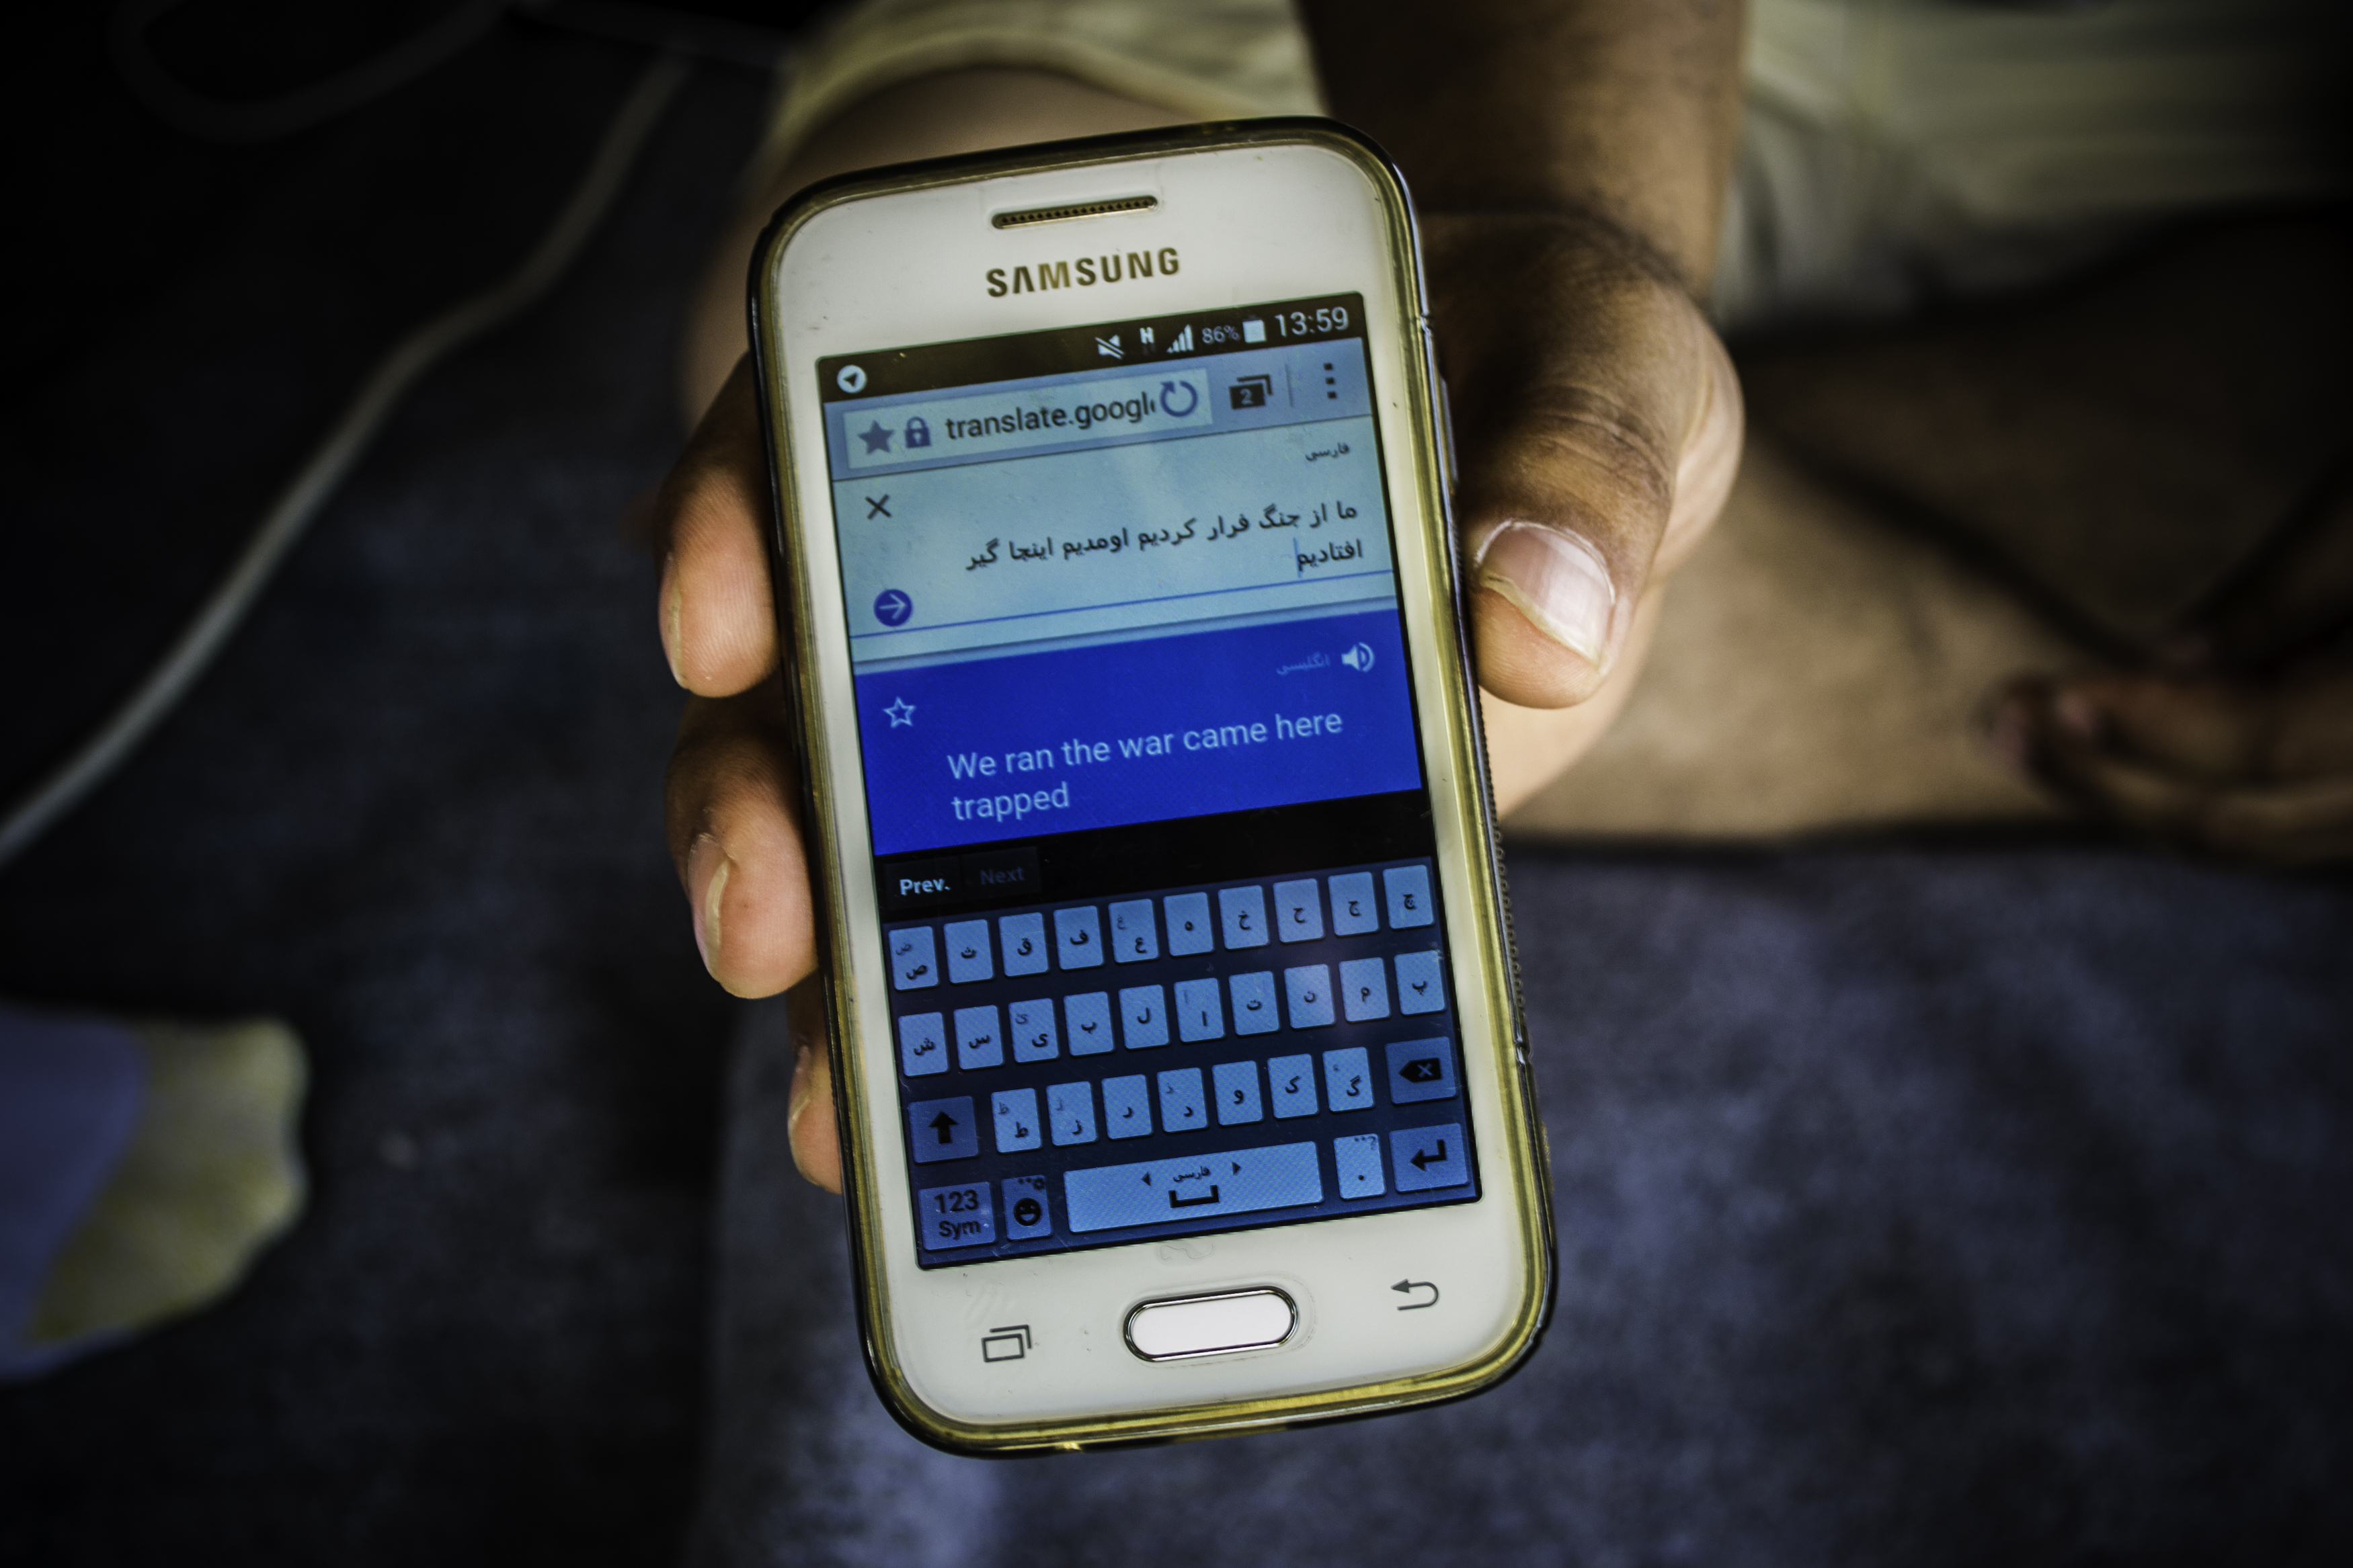 A migrant living in an official government camp near Thessaloniki, Greece, opens Google Translate and taps out a few haunting words.